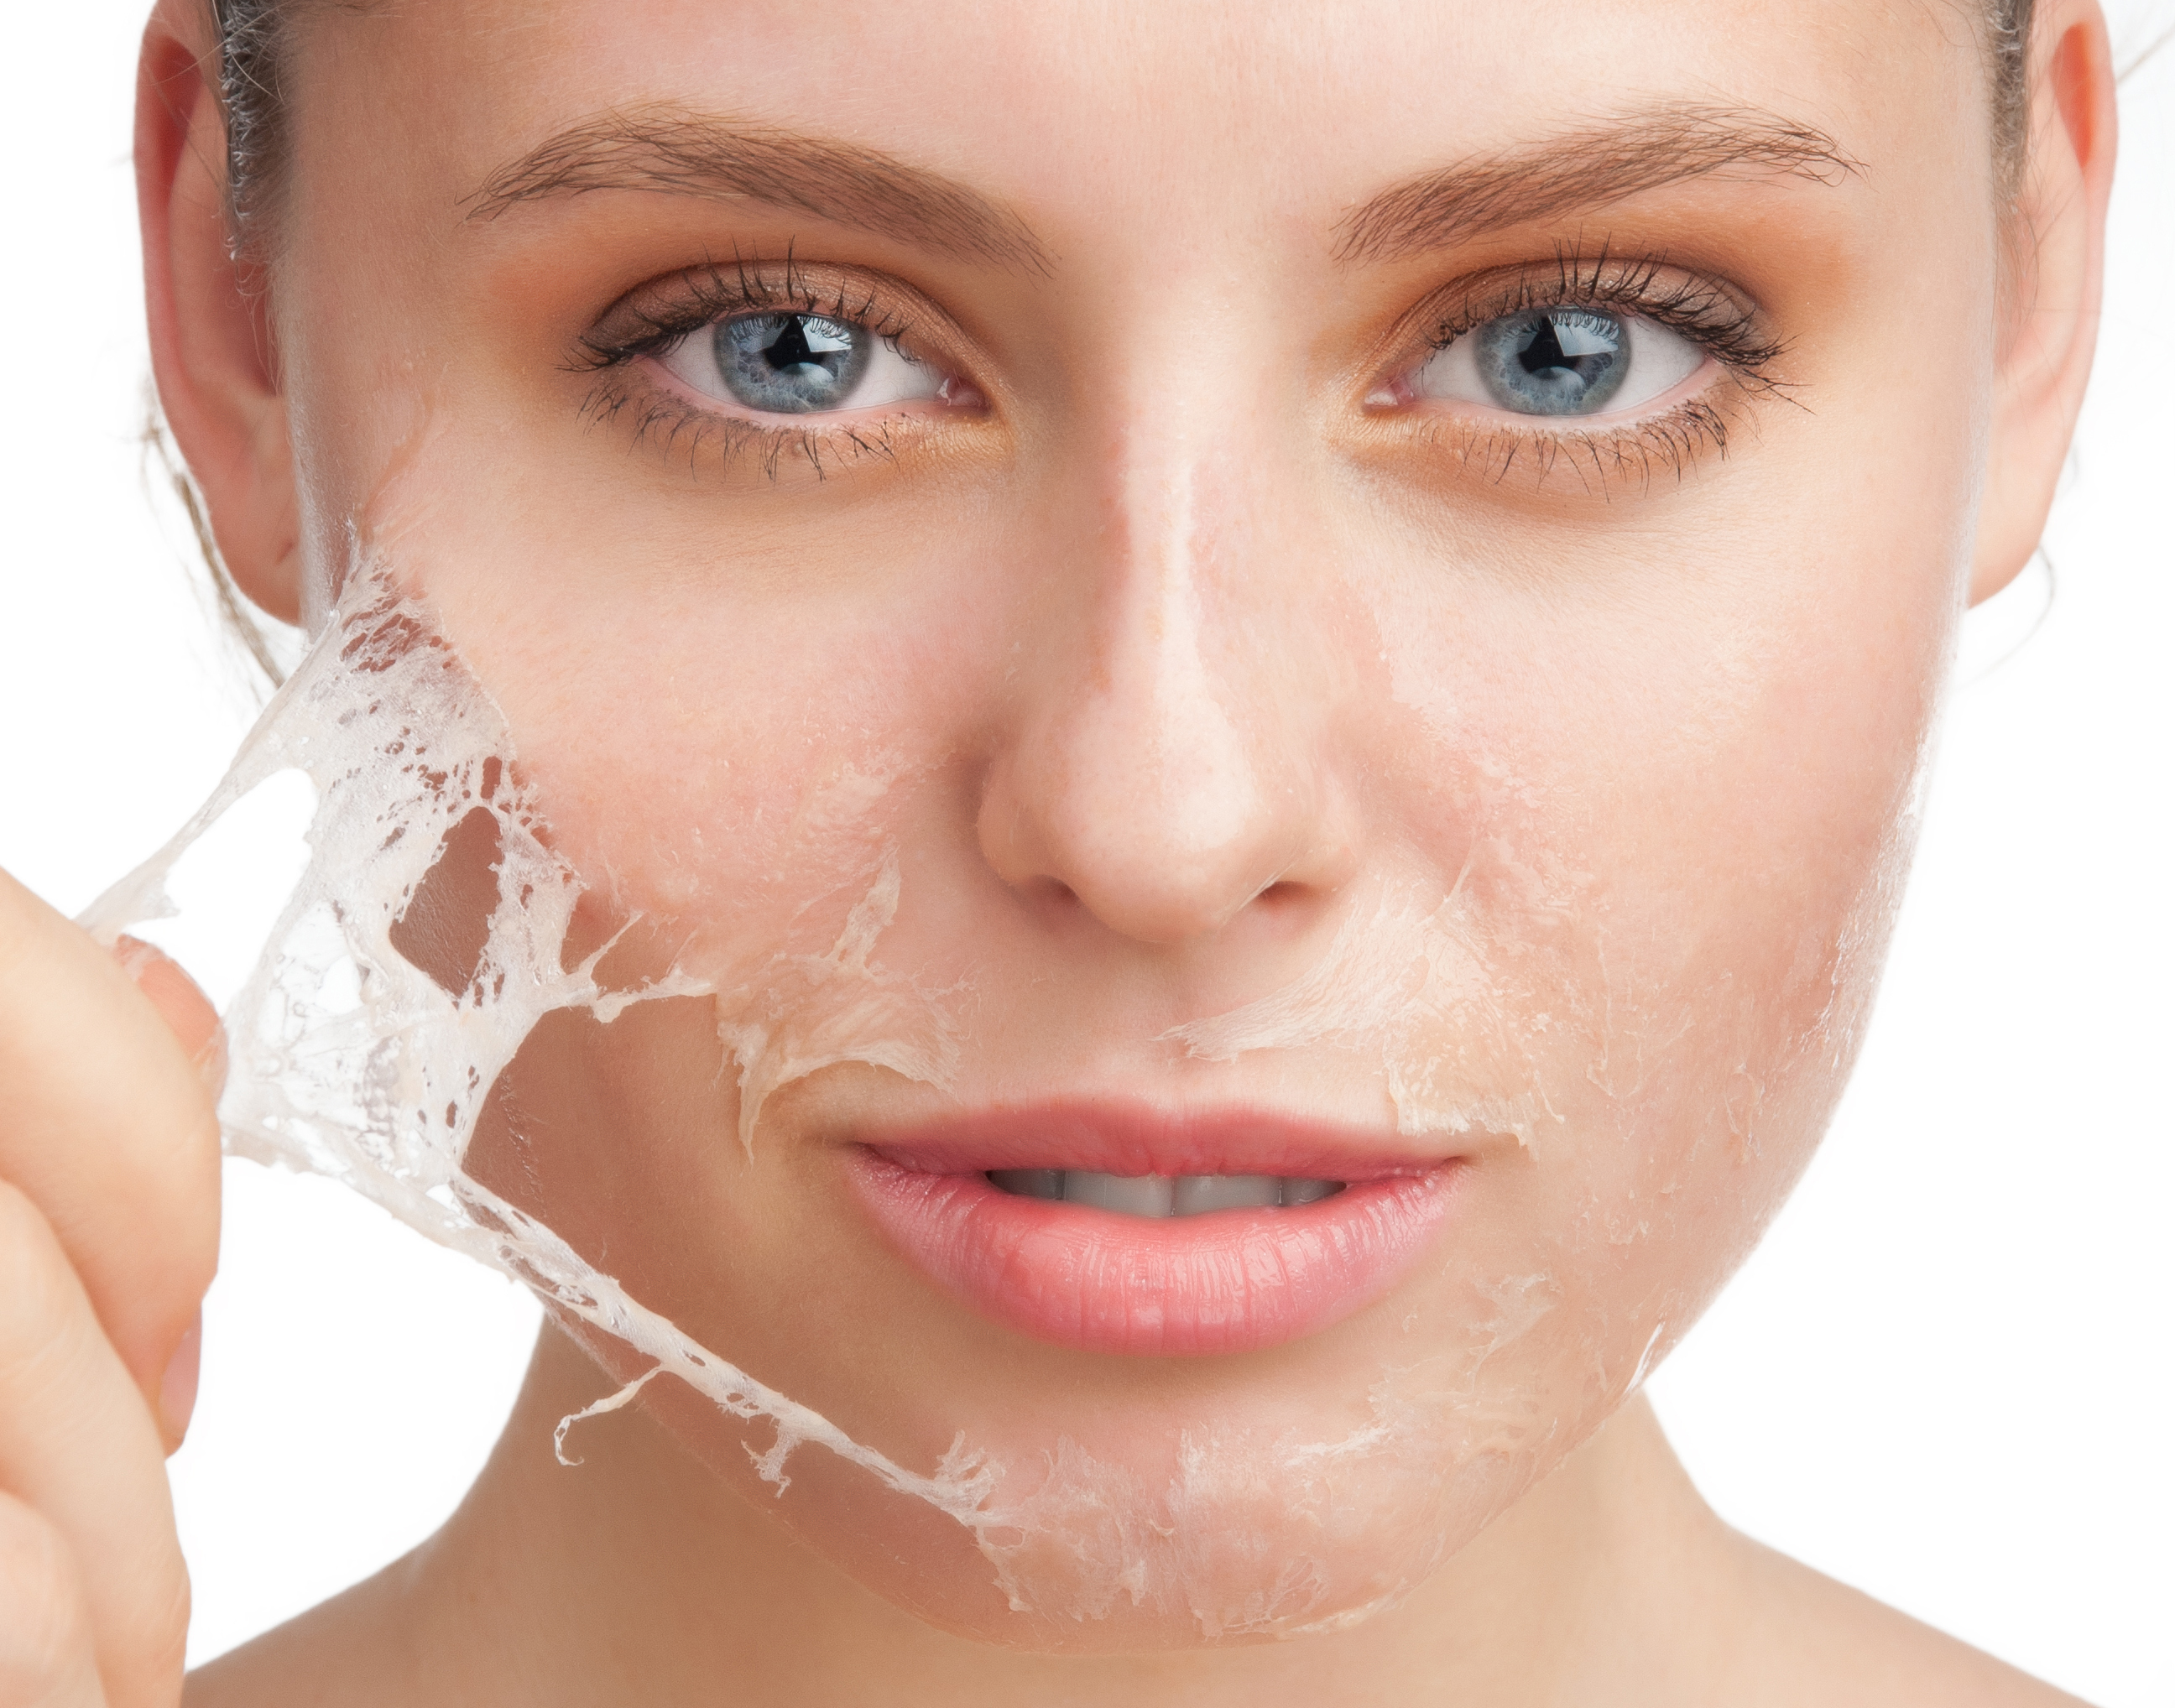 Dry skin care tips during summer